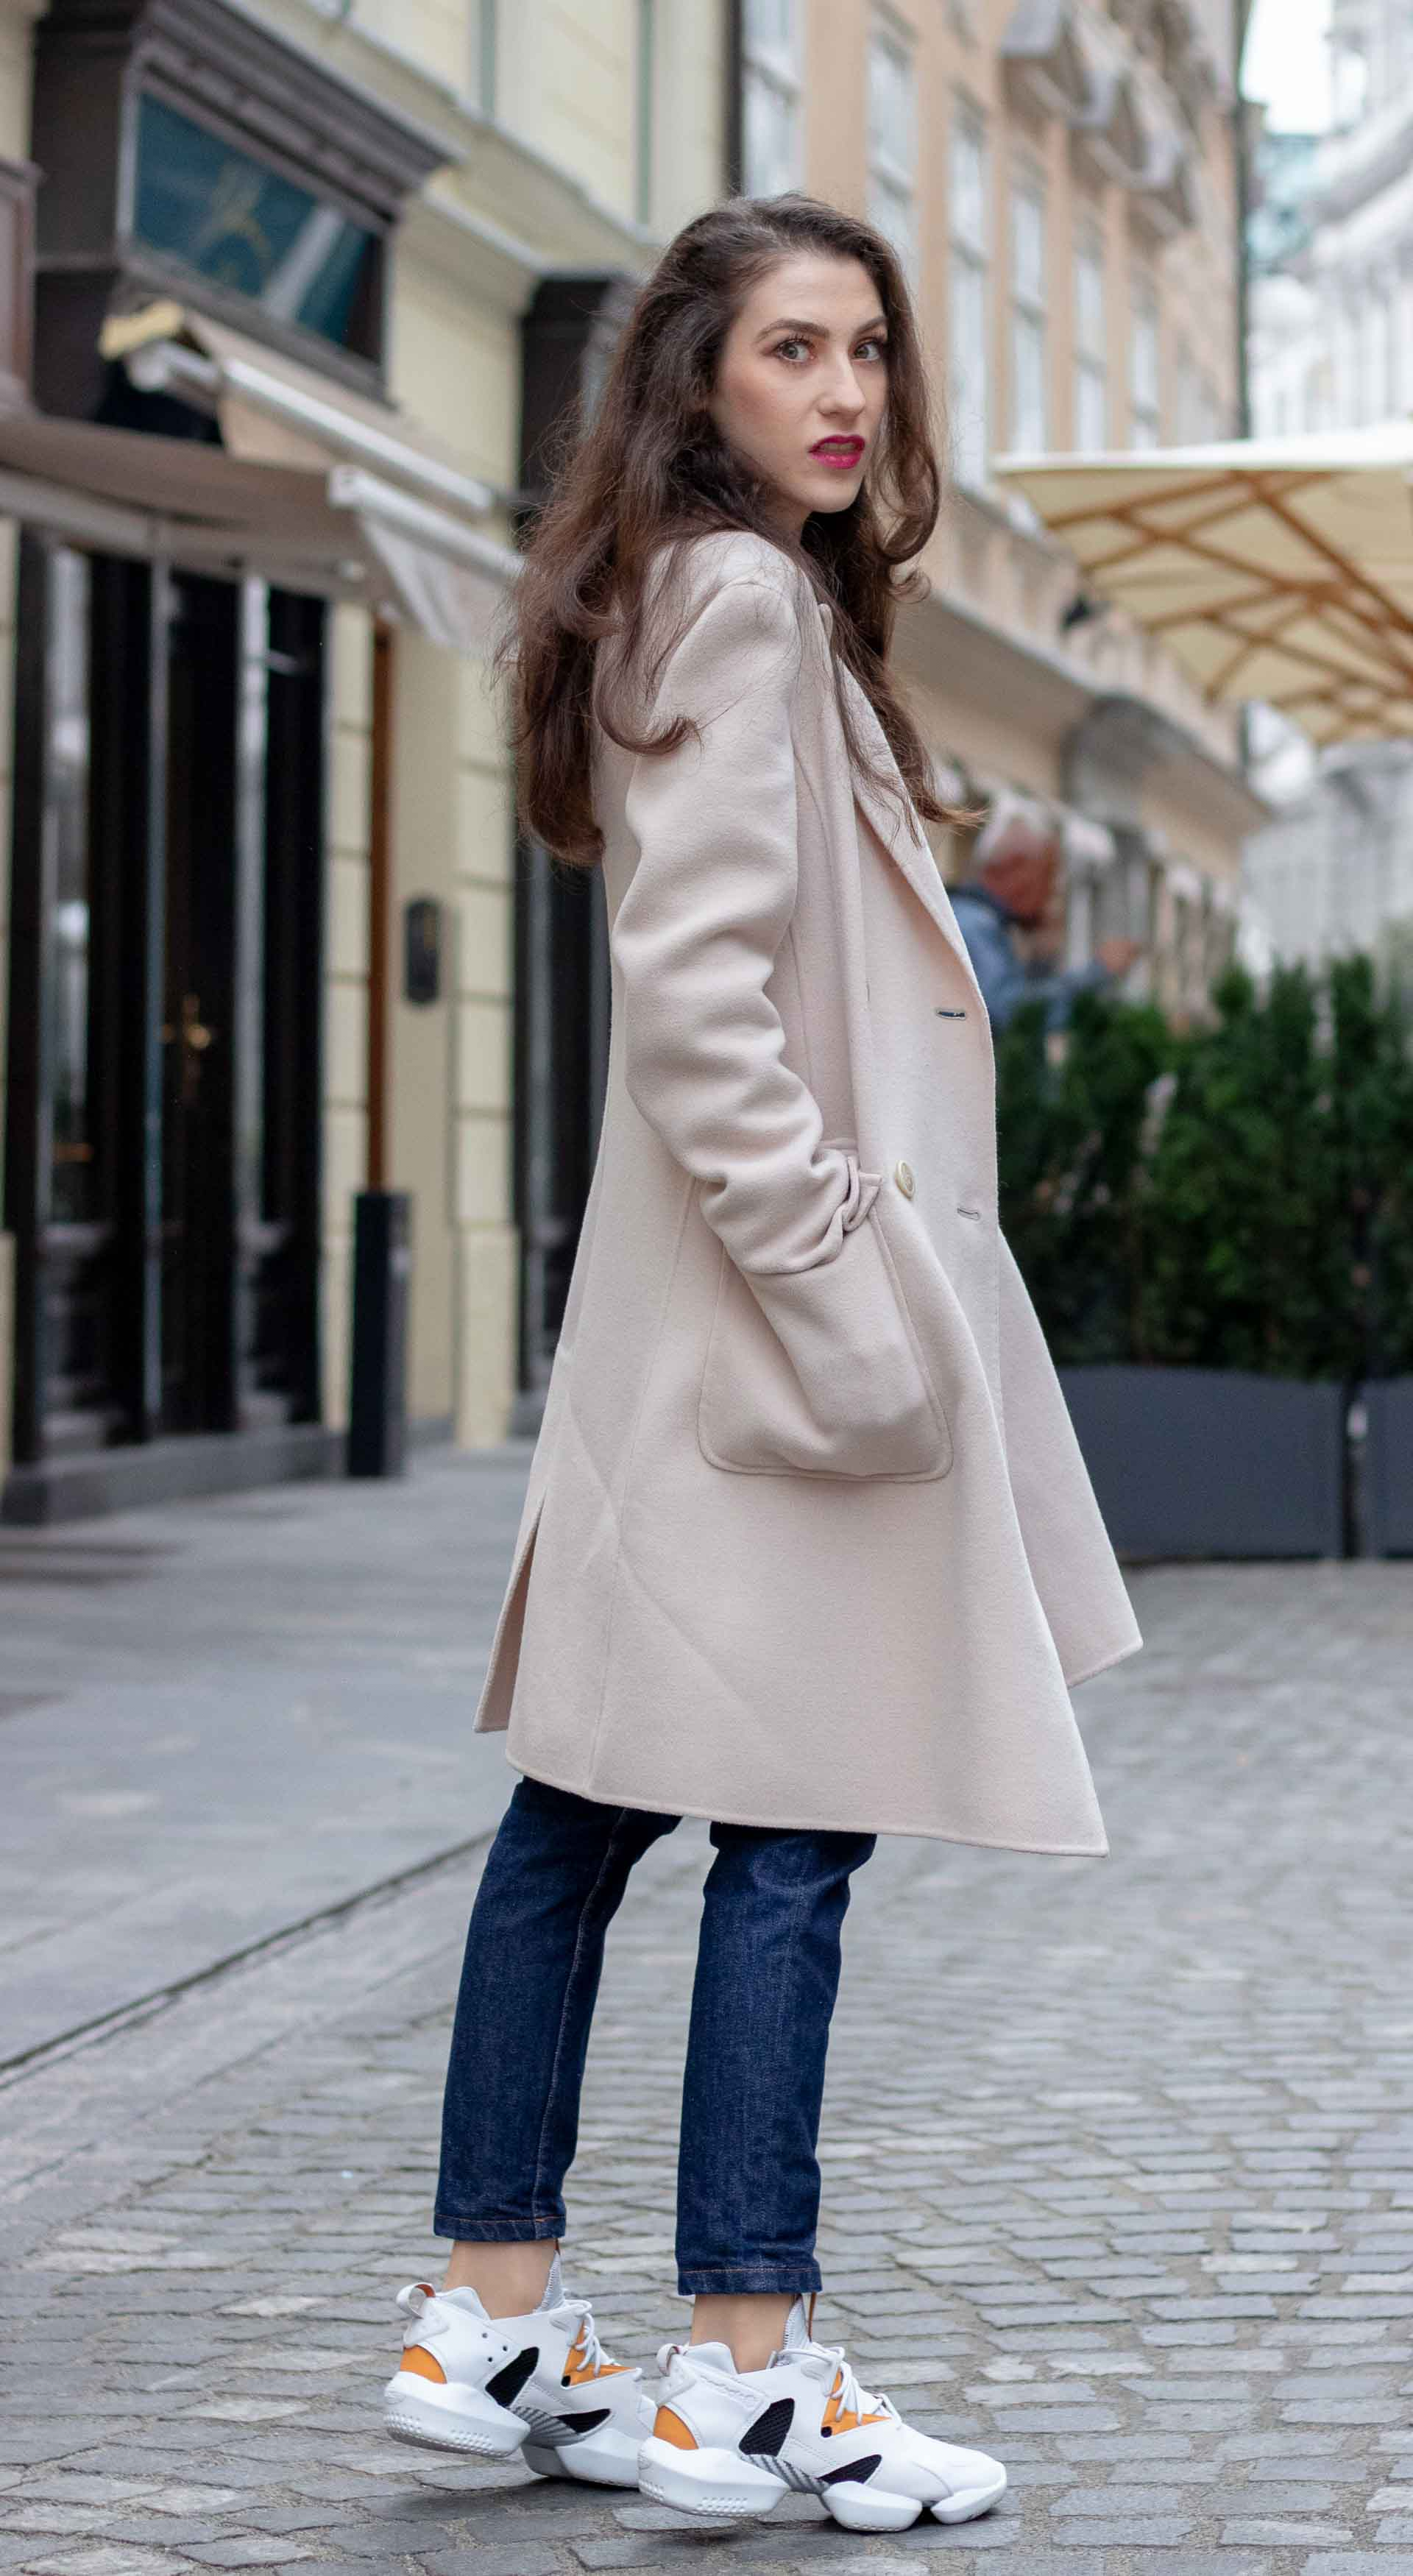 Beautiful Slovenian Fashion Blogger Veronika Lipar of Brunette from Wall dressed in A.P.C. dark blue denim jeans, Weekend Max Mara coat, Reebok instapump sneakers in fall